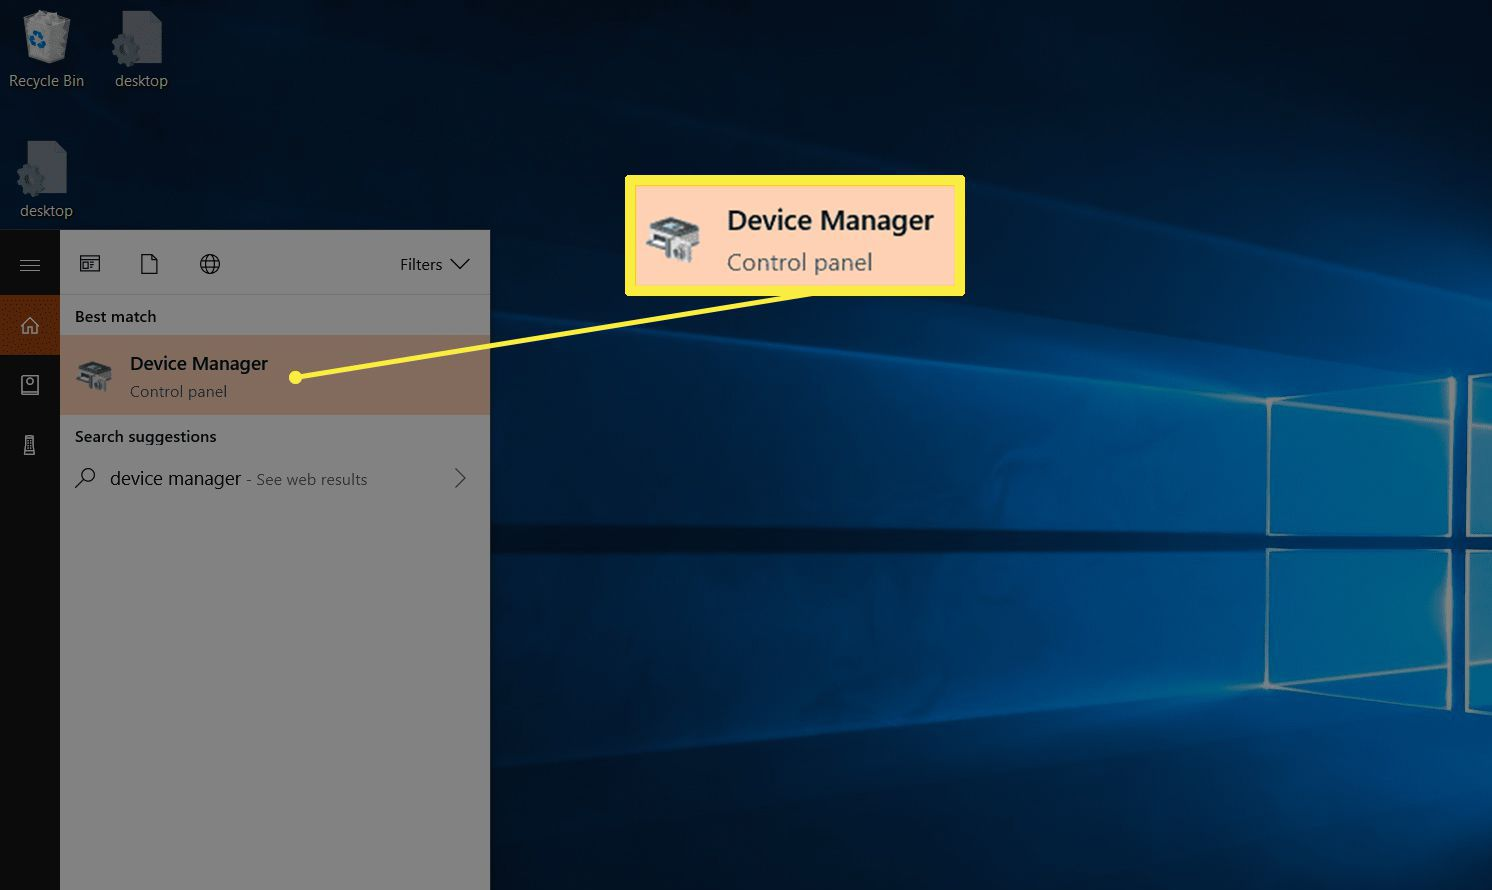 Device Manager Control panel in Windows 10